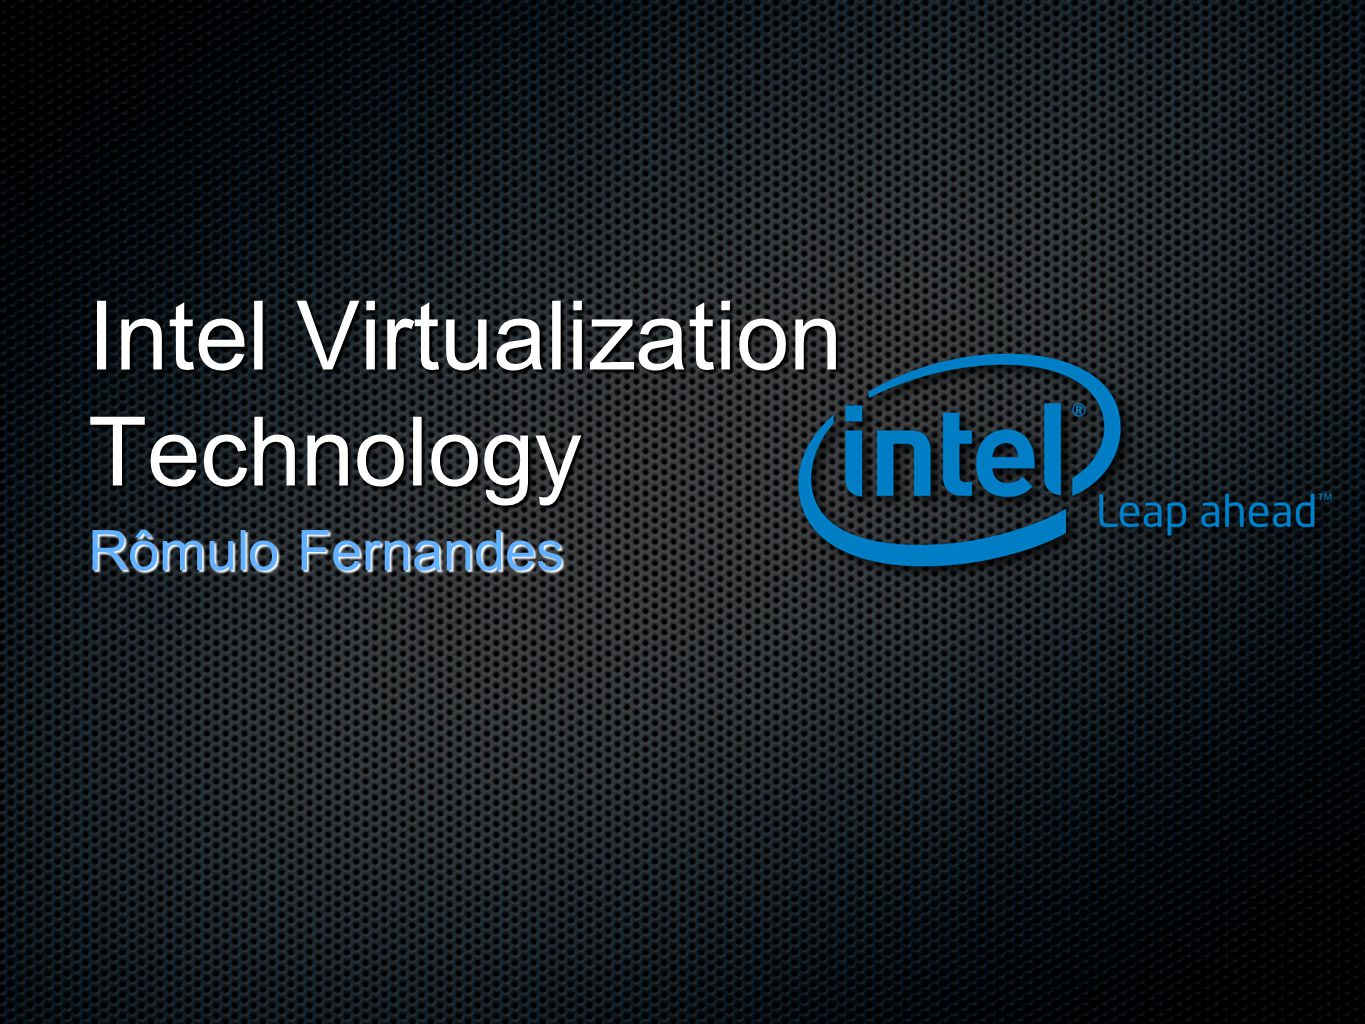 Intel Virtualization Technology Rômulo Fernandes